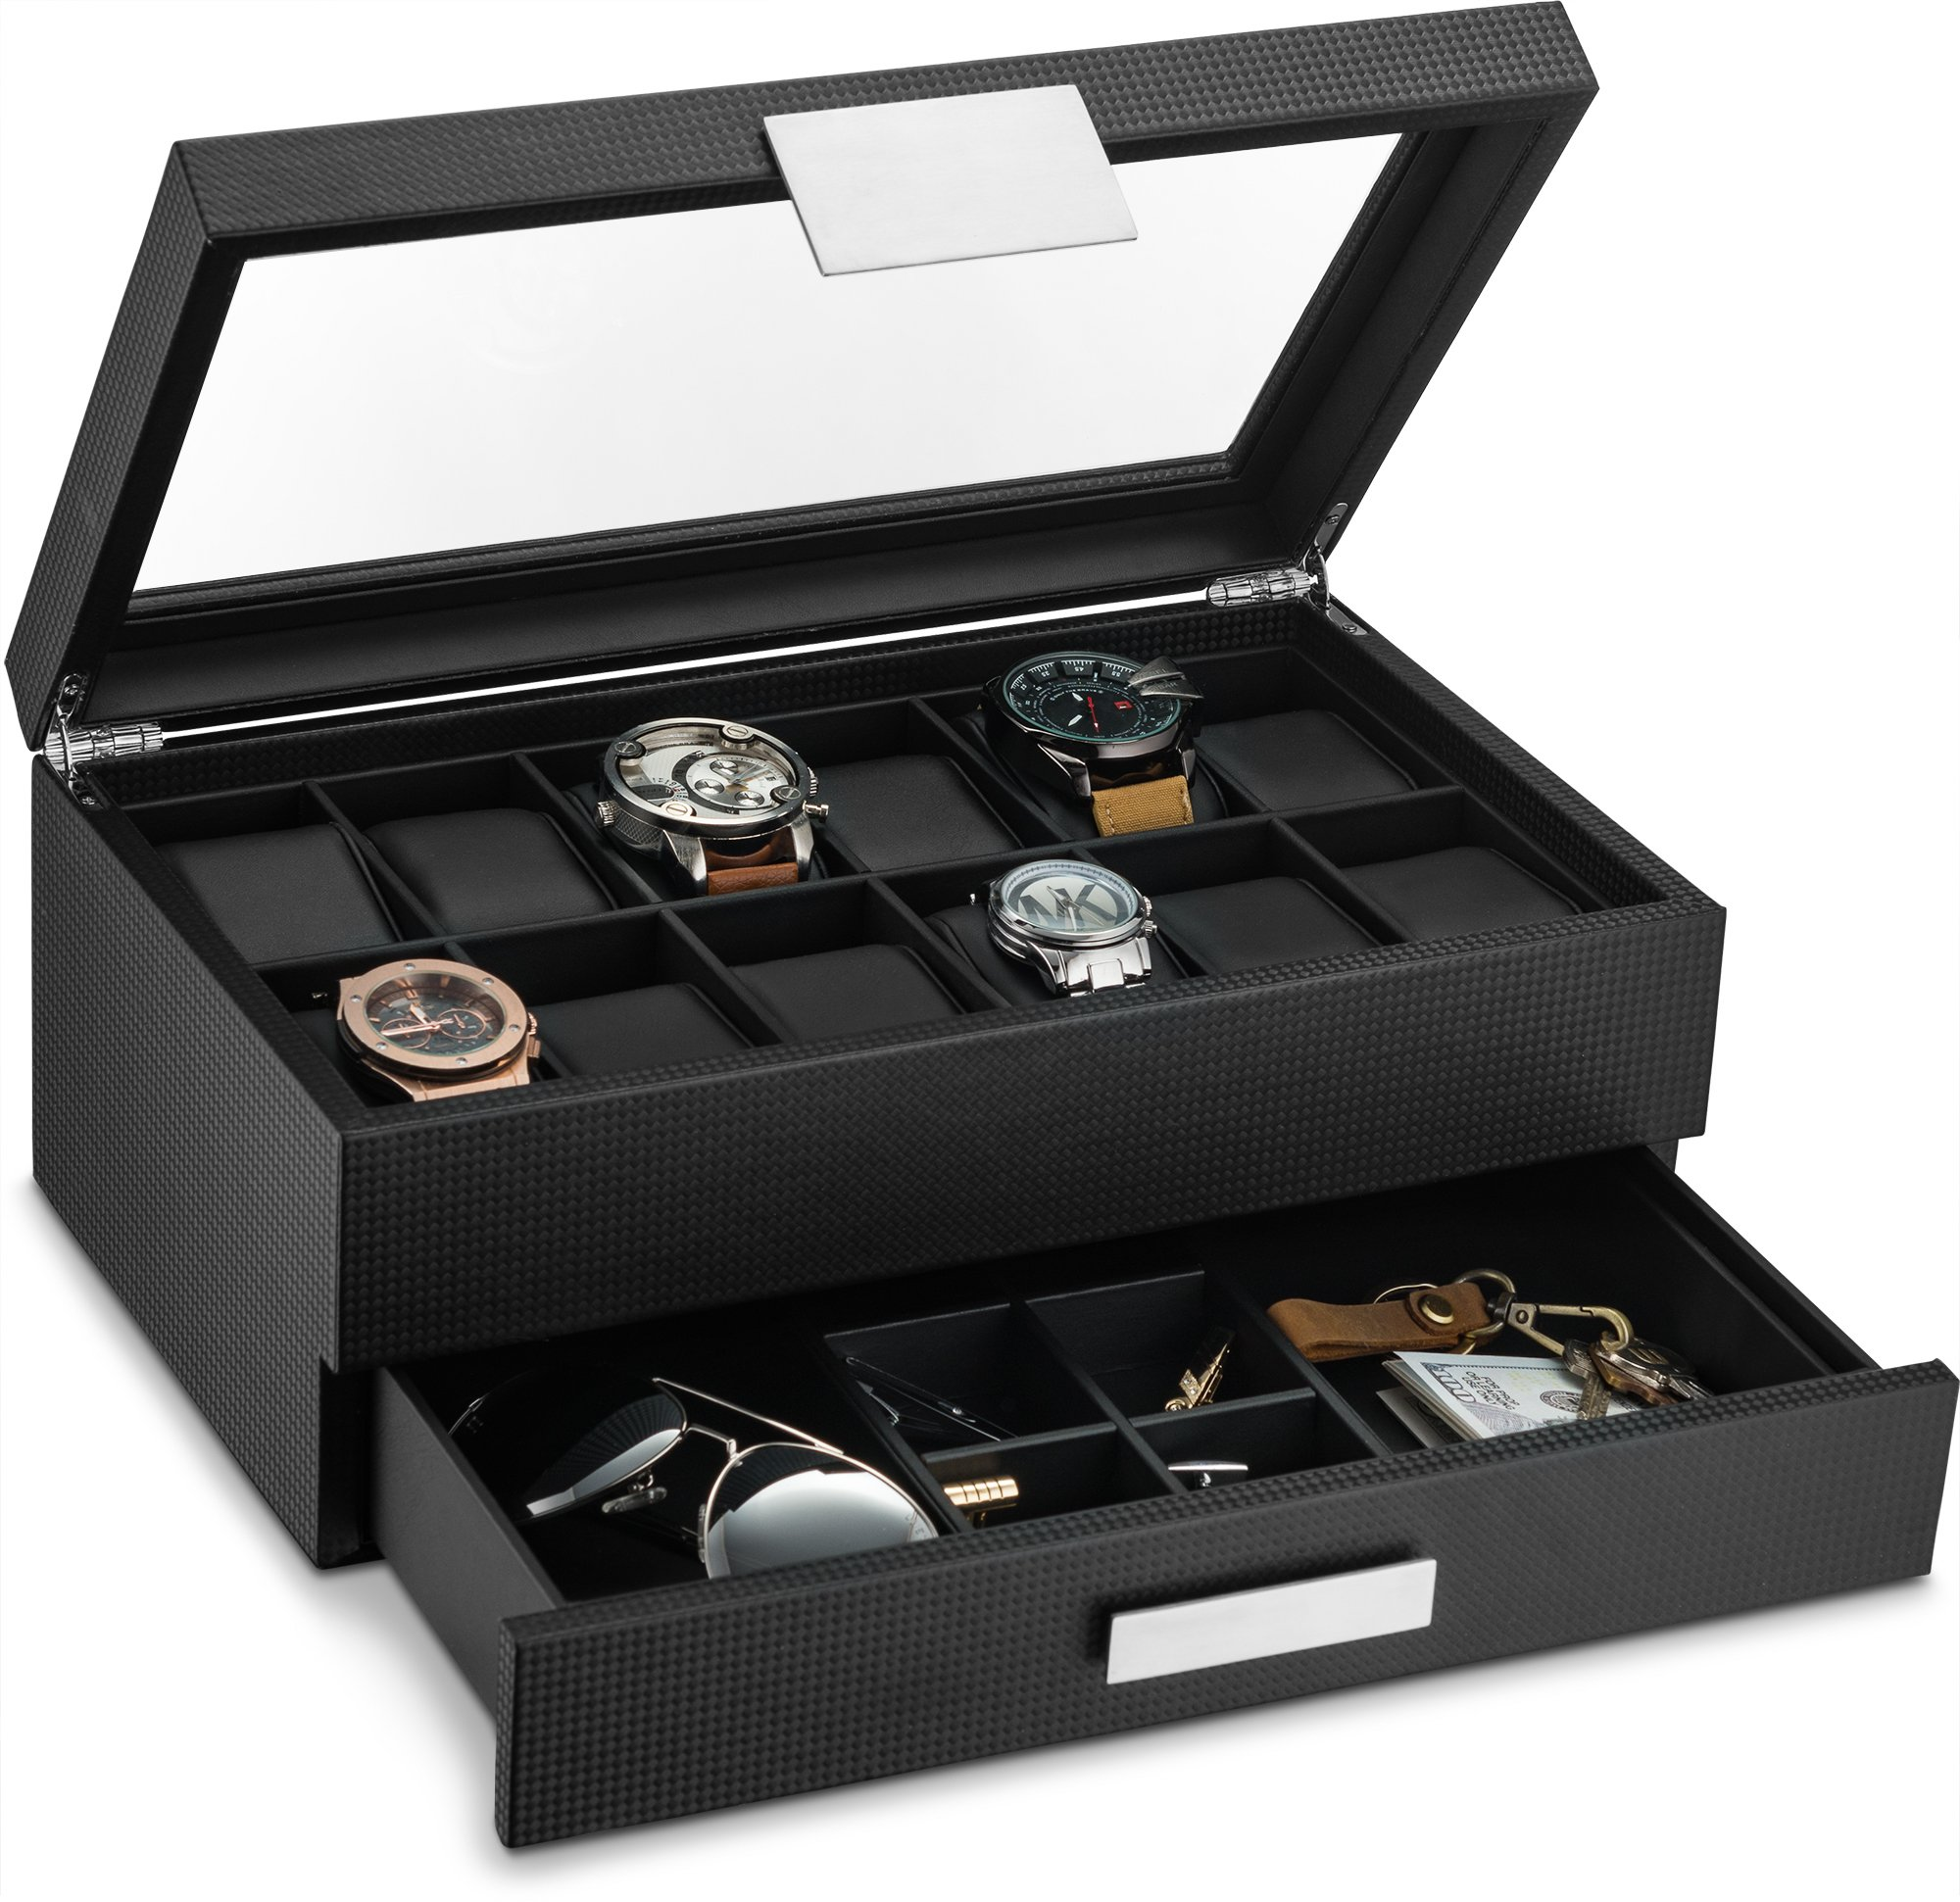 818631432 Get Quotations · Watch Box with Valet Drawer for Men - 12 Slot Luxury Watch  Case Display Organizer,